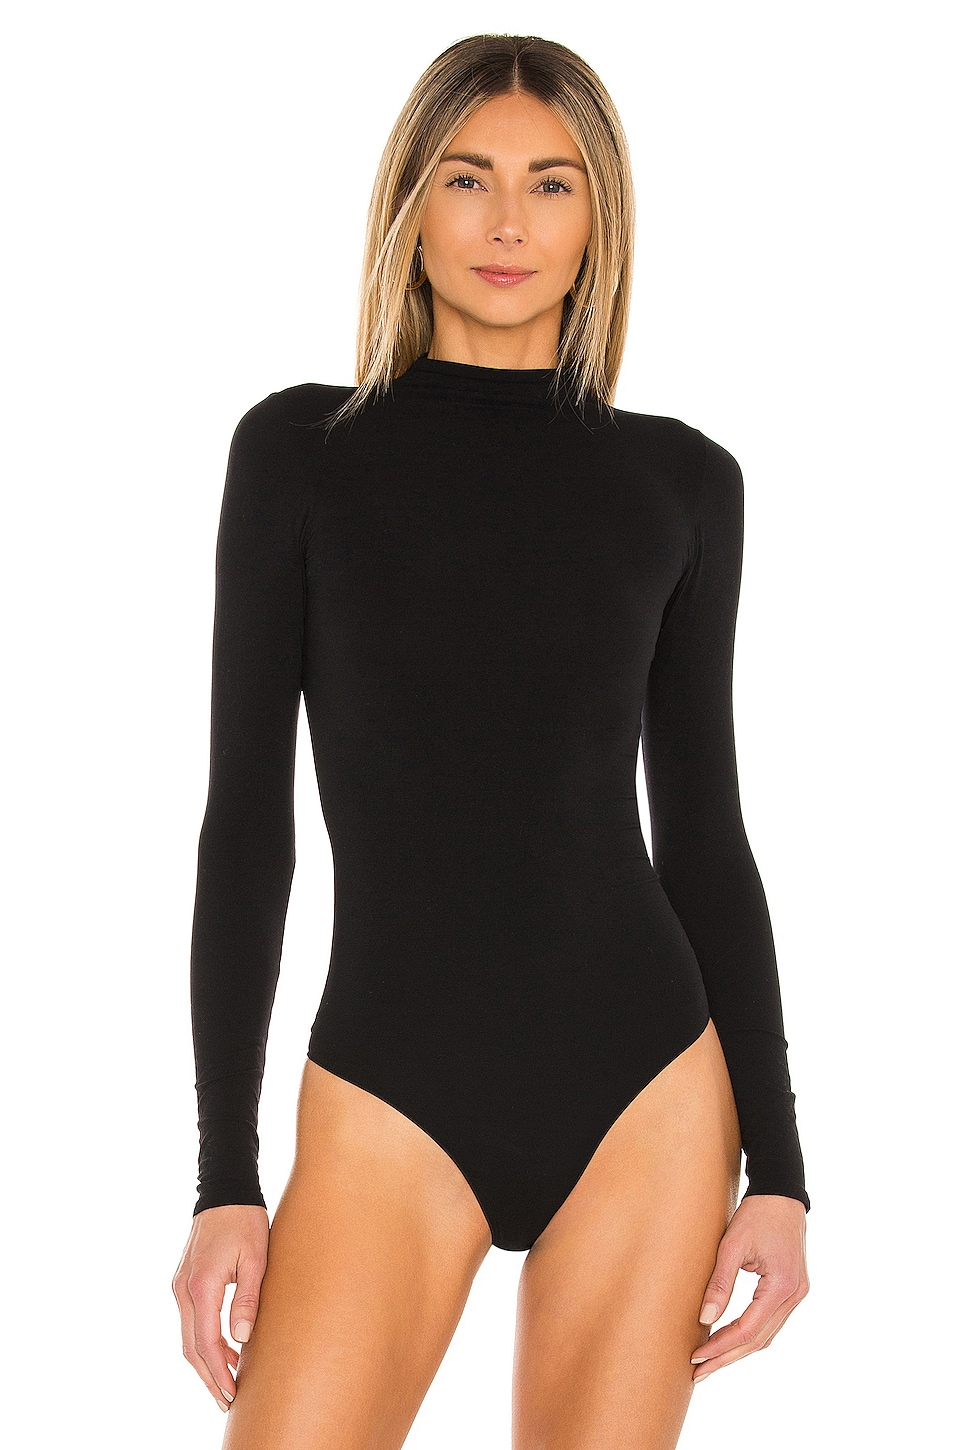 Ballet Body Thong Bodysuit, view 2, click to view large image.